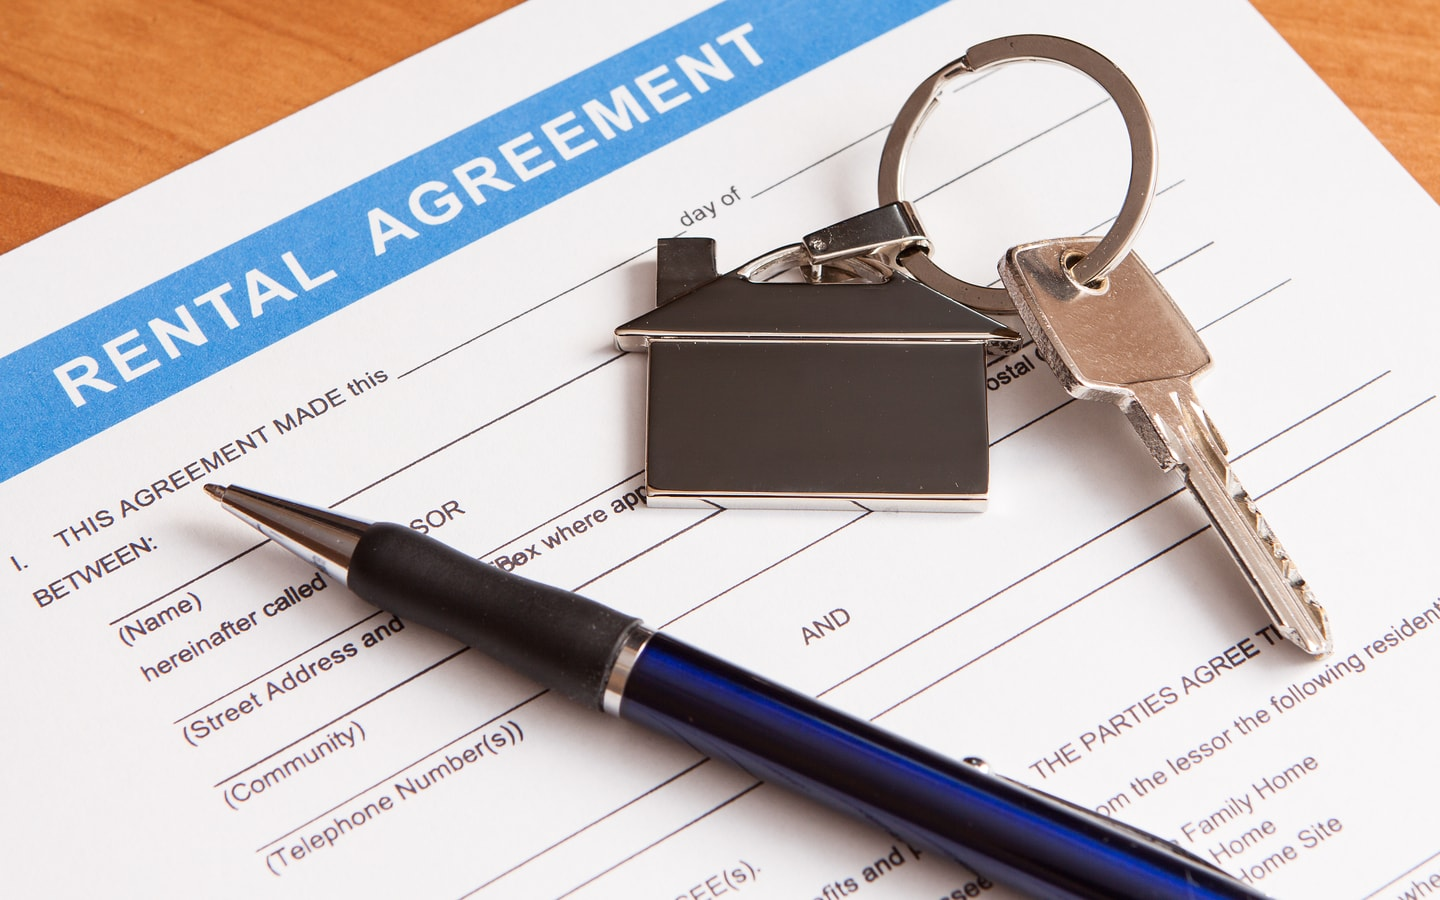 rental contract with pen and house keys